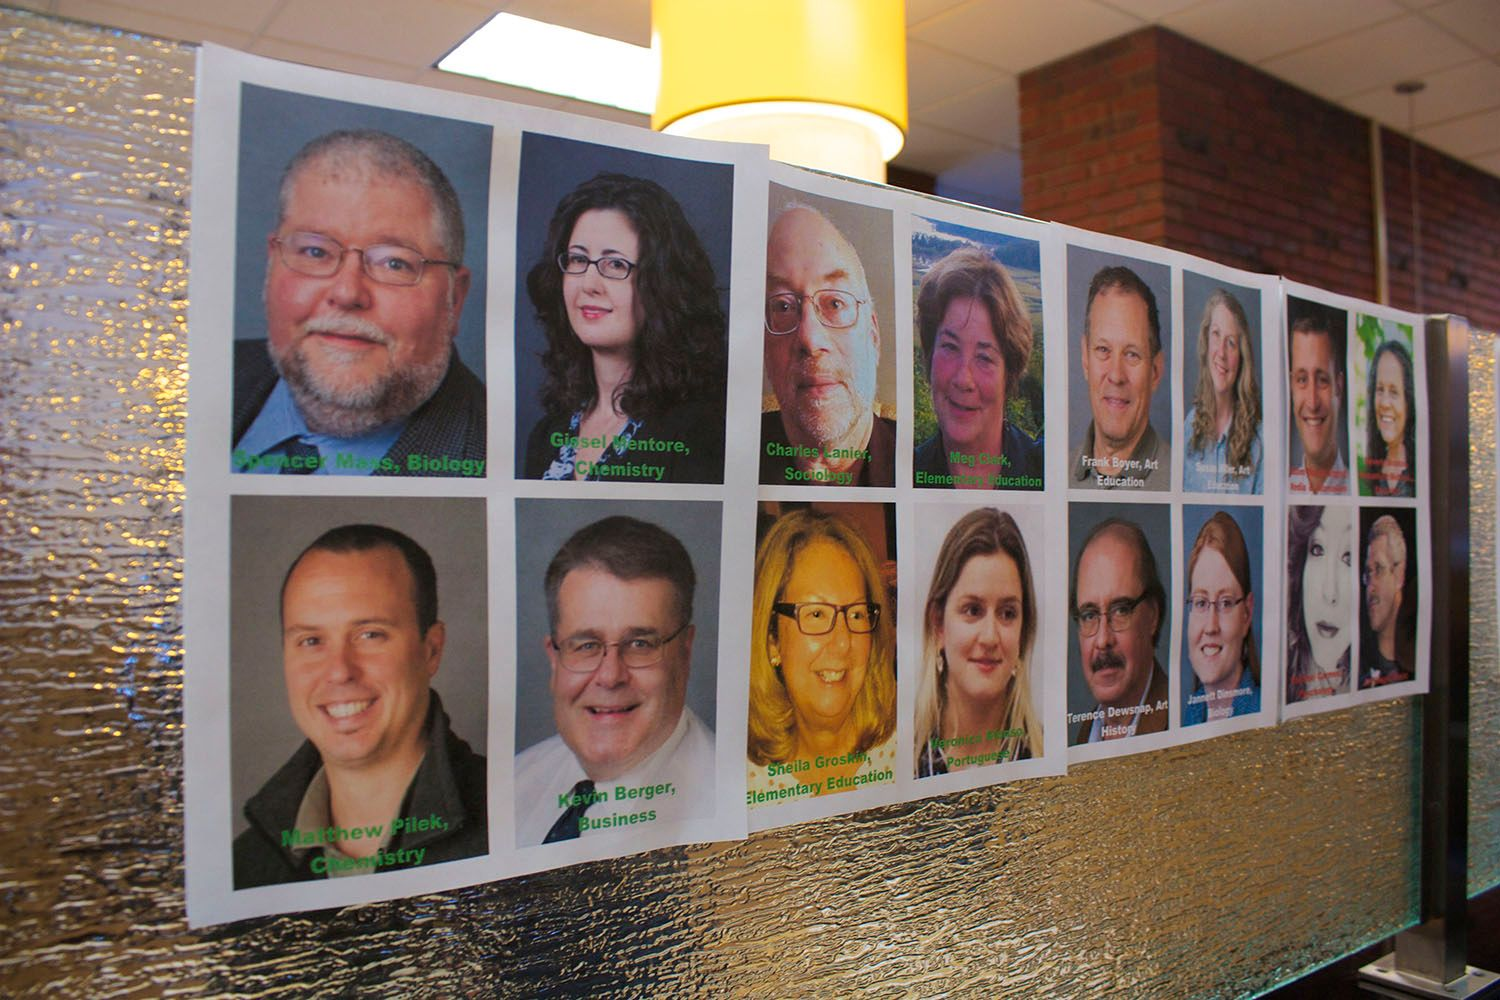 Each photo is inscribed with the professor's name as well as the department that they teach in at the college. Photo by Kristen Warfield.